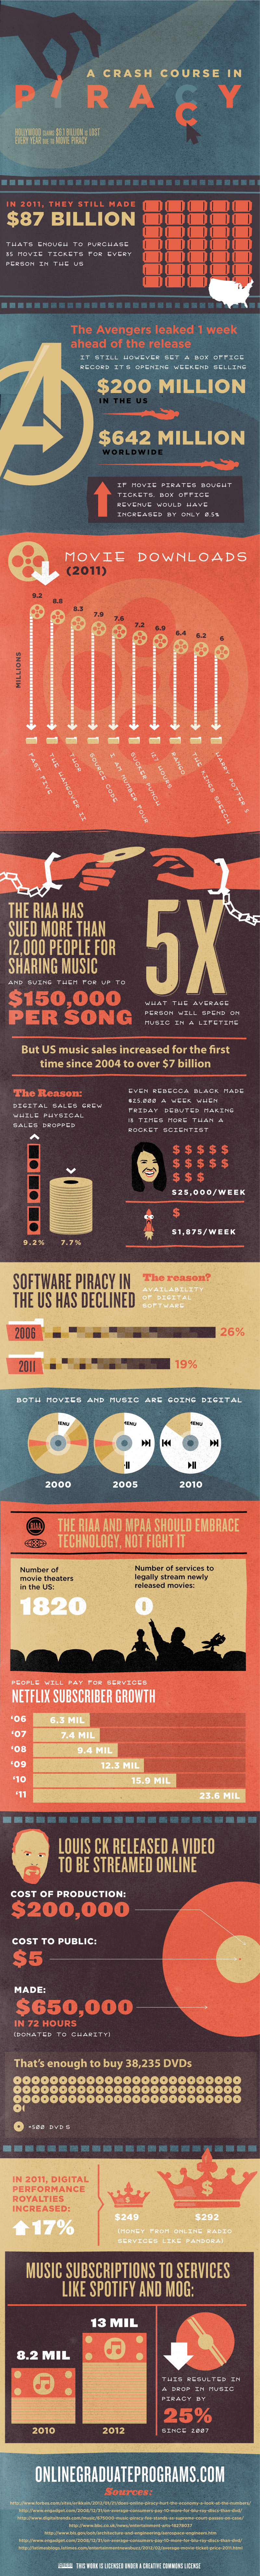 Music, Movies, Programs &amp; Piracy